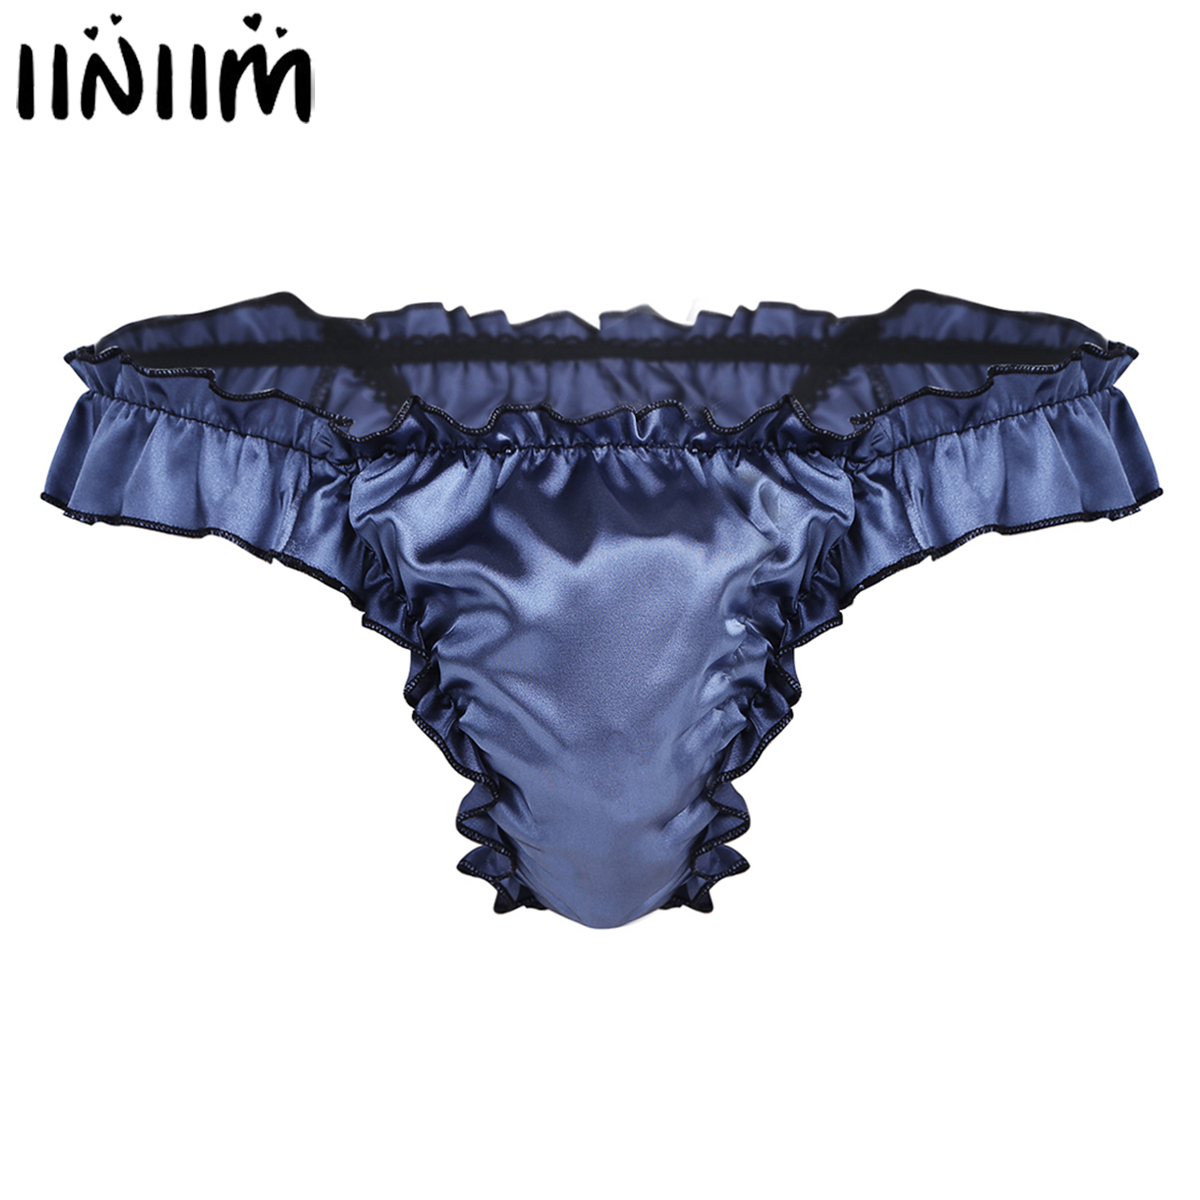 Mens Lingerie Panties Shiny Ruffled Frilly Sissy Pouch Bikini Briefs High Cut Jockstraps T-Back Gay Underwear Underpants